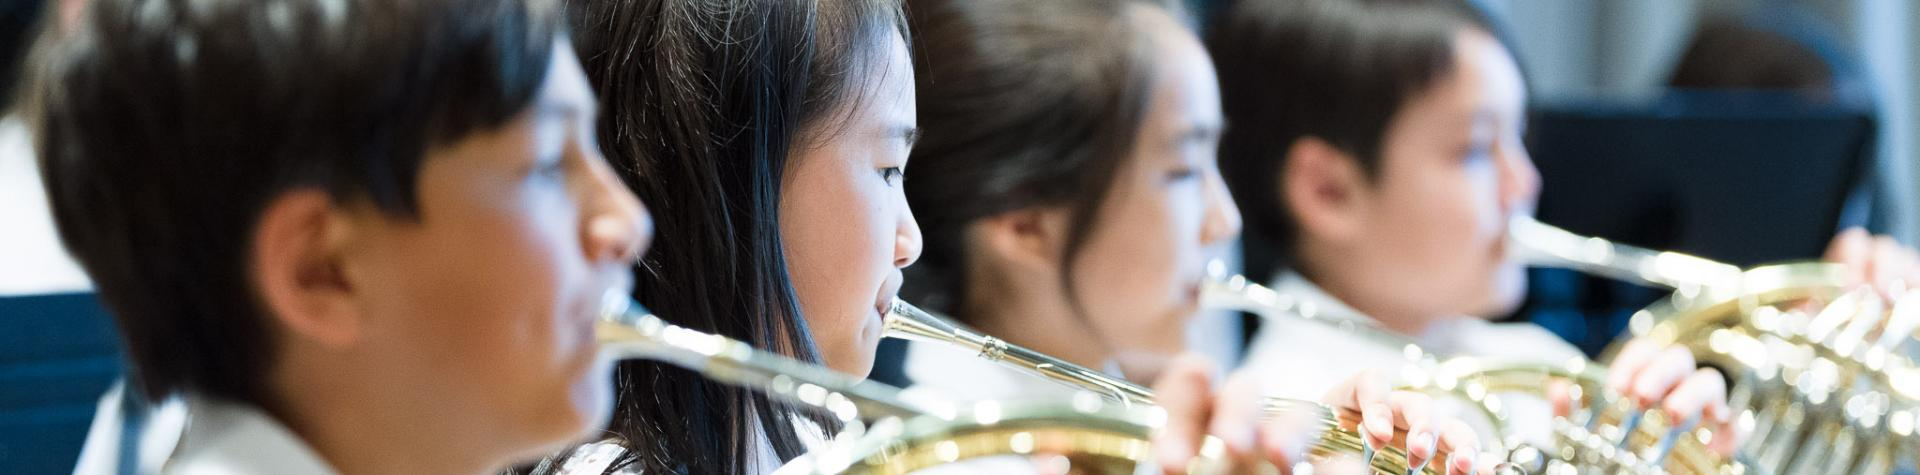 Band Program - French horn students